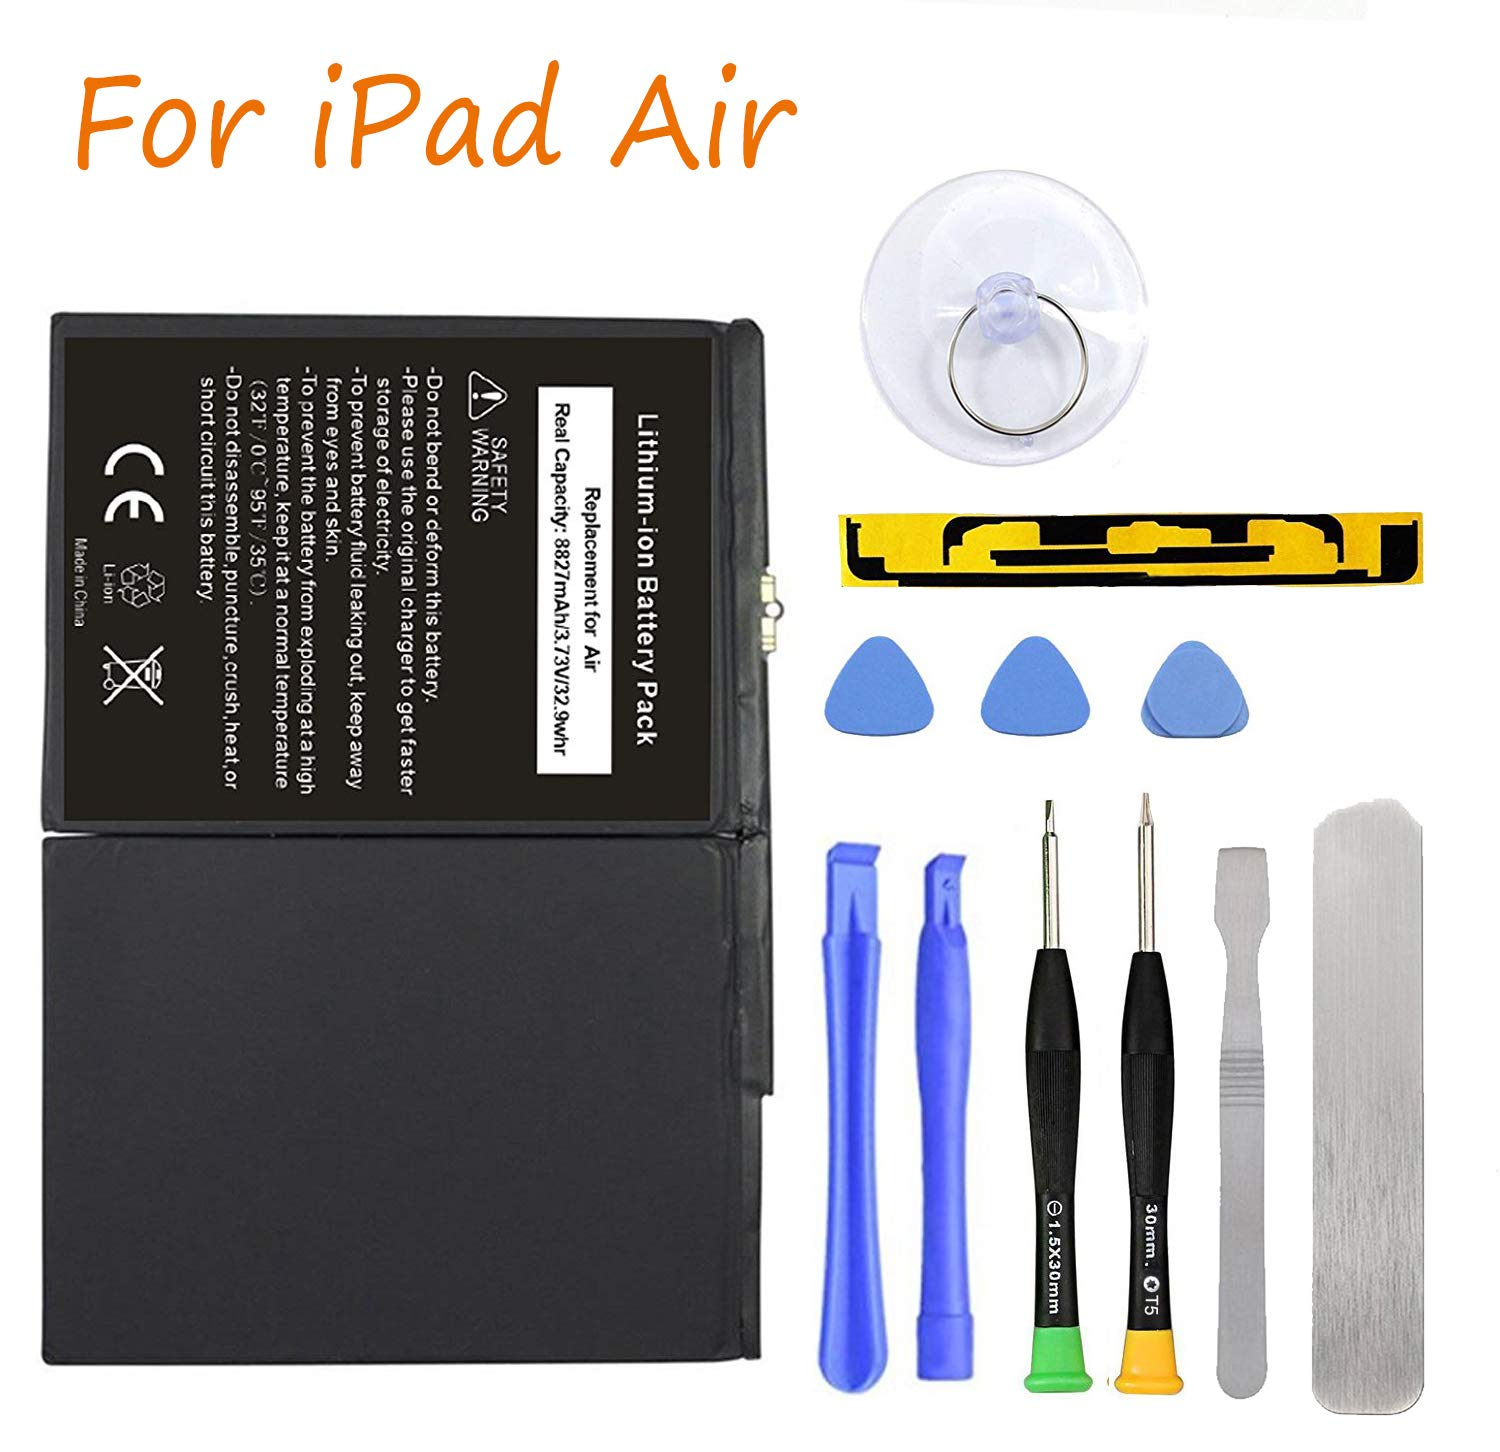 HDCKU New Battery for iPad Air Battery Replacement Kit for iPad 5 Generation A1474, A1475, A1476 with Full Set Installation Tools and Adhesive (365 Days Warranty)